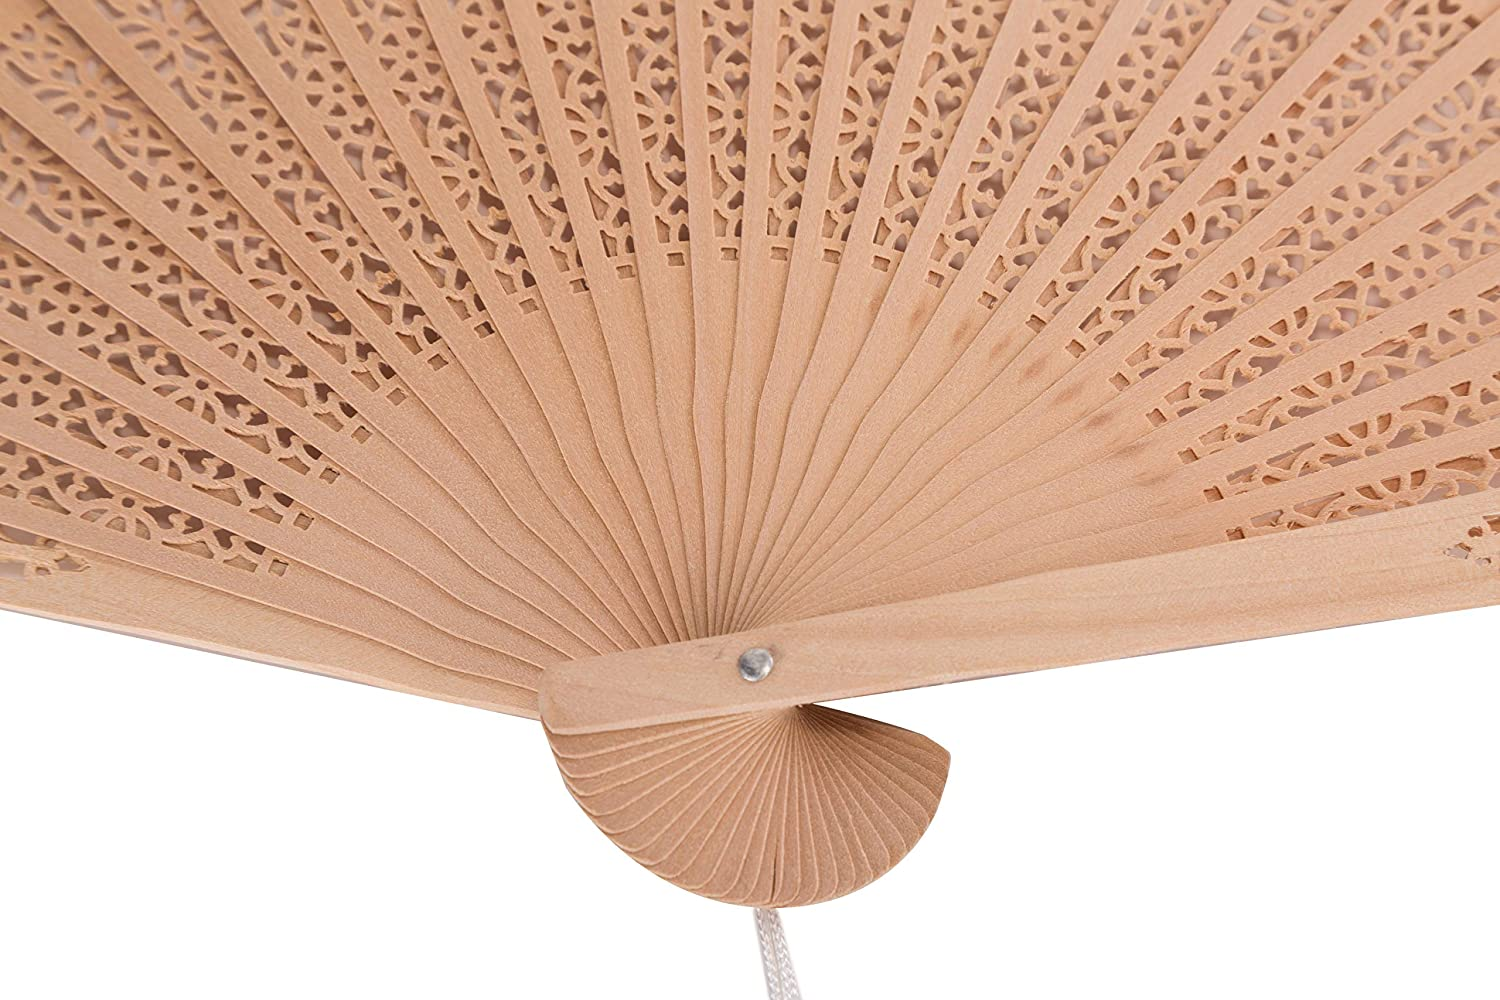 Sepwedd Set of 10pcs Sandalwood Fan Favors with Gift Bags and Tassels Wooden Folding Fan 10Pcs